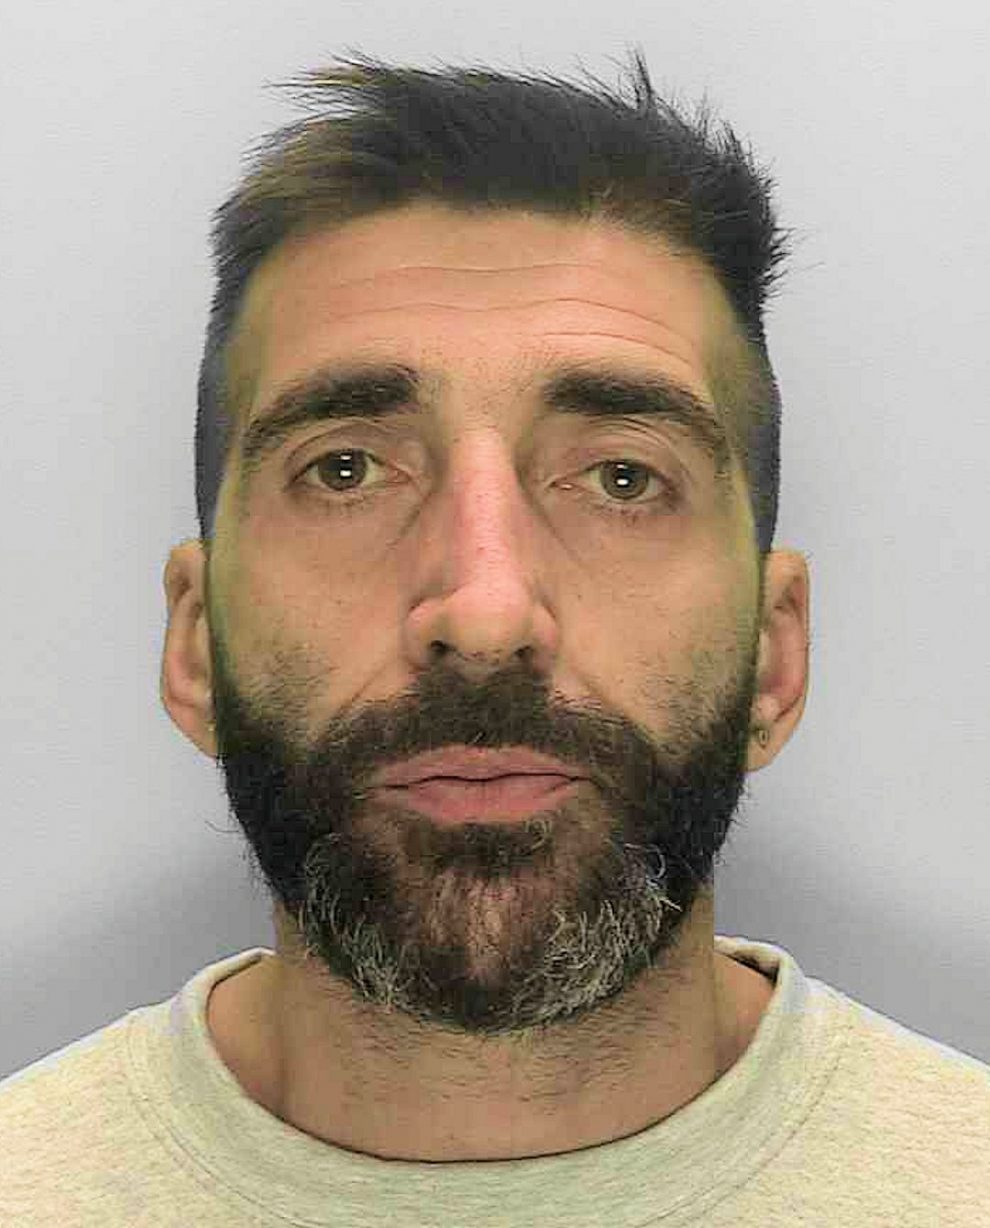 A man has been sentenced to life imprisonment for the murder of another man in Brighton in September last year